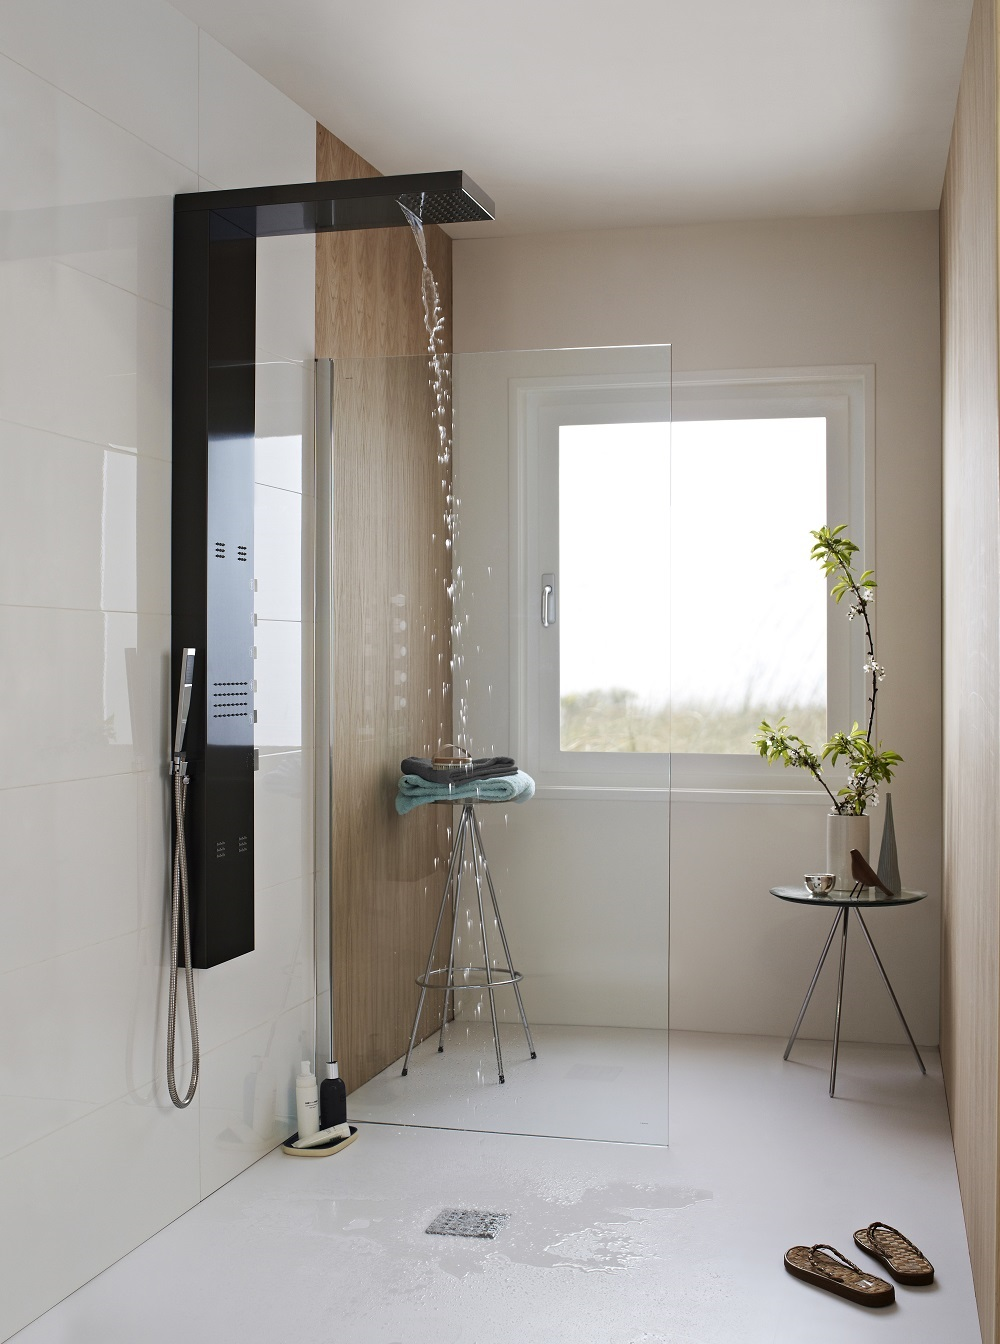 The walk in shower and wet room buyers guide wet room dailygadgetfo Images